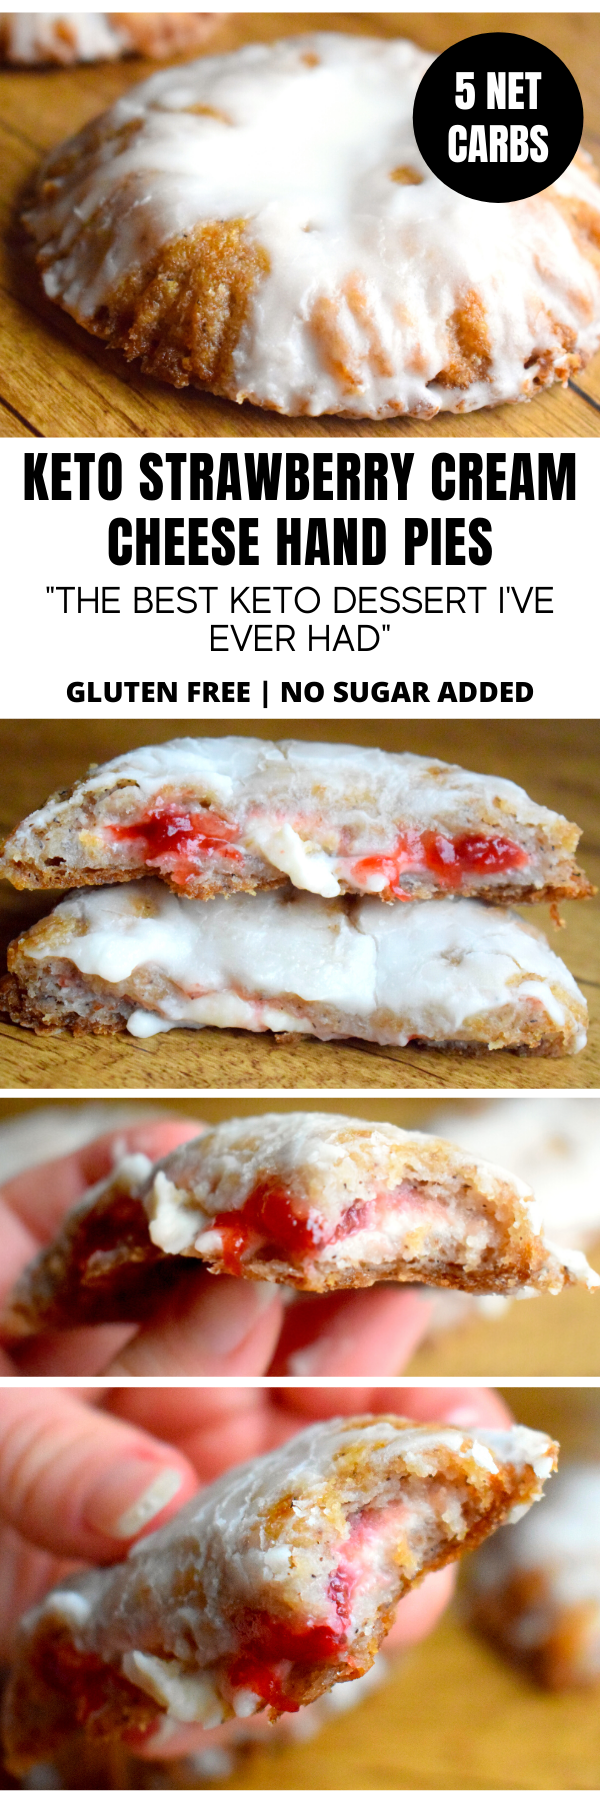 KETO STRAWBERRY CREAM CHEESE HAND PIES